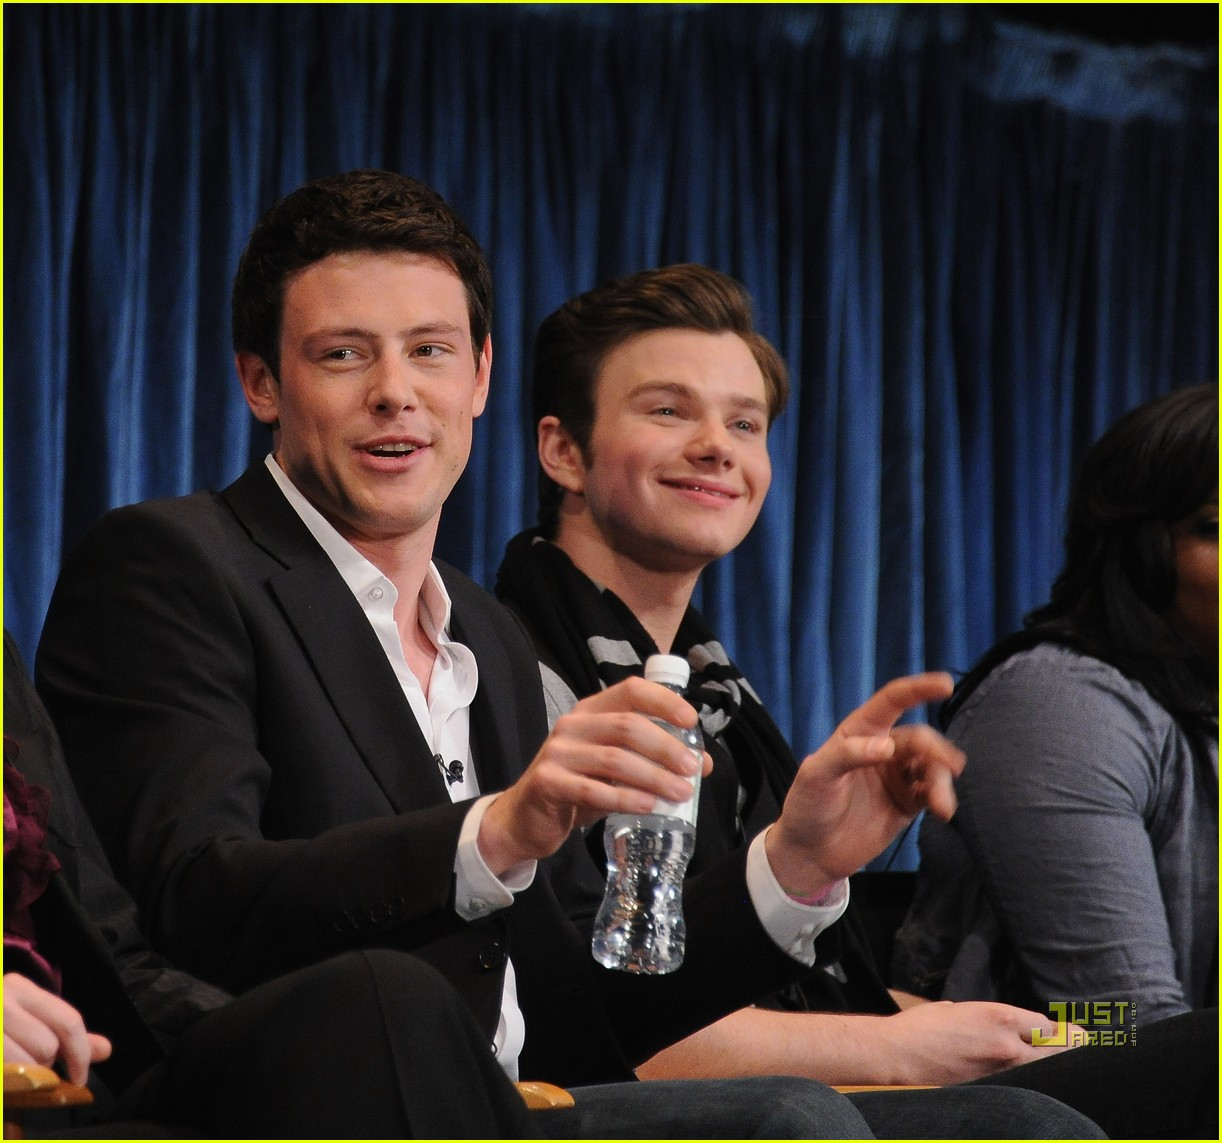 Glee cast at PaleyFest 2011